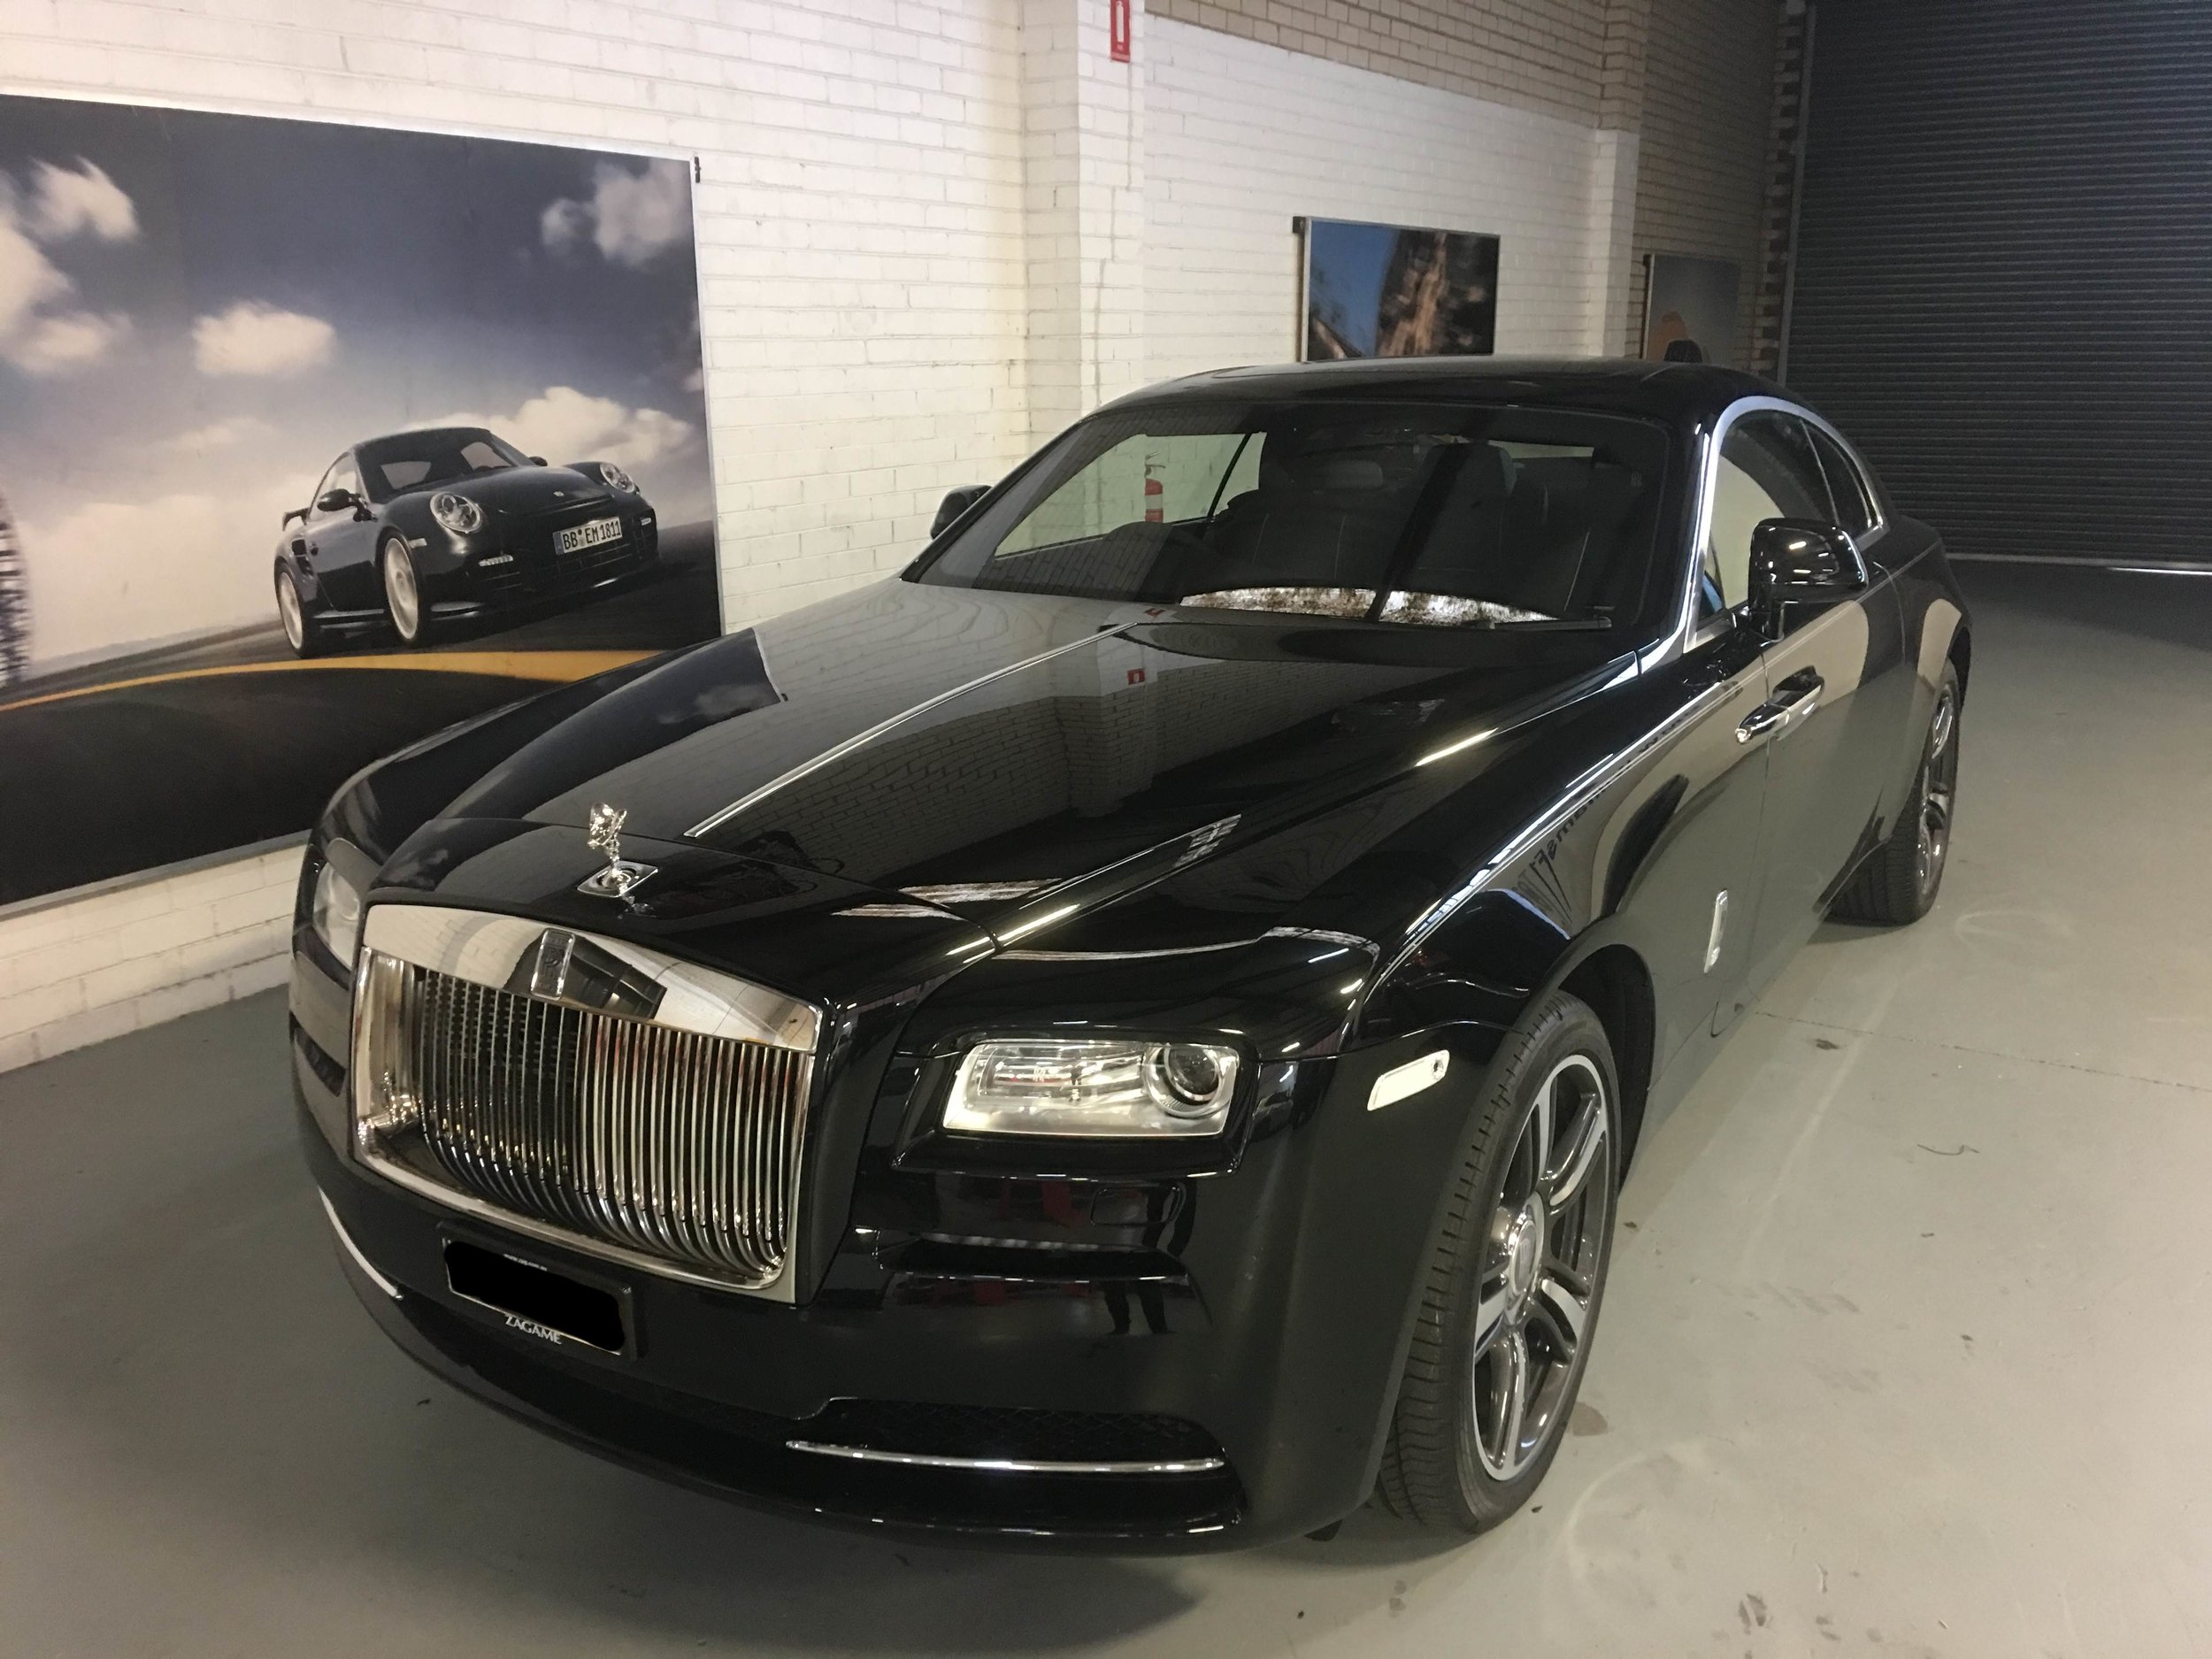 A new Rolls Royce Wraith, fitted with AIS tracking